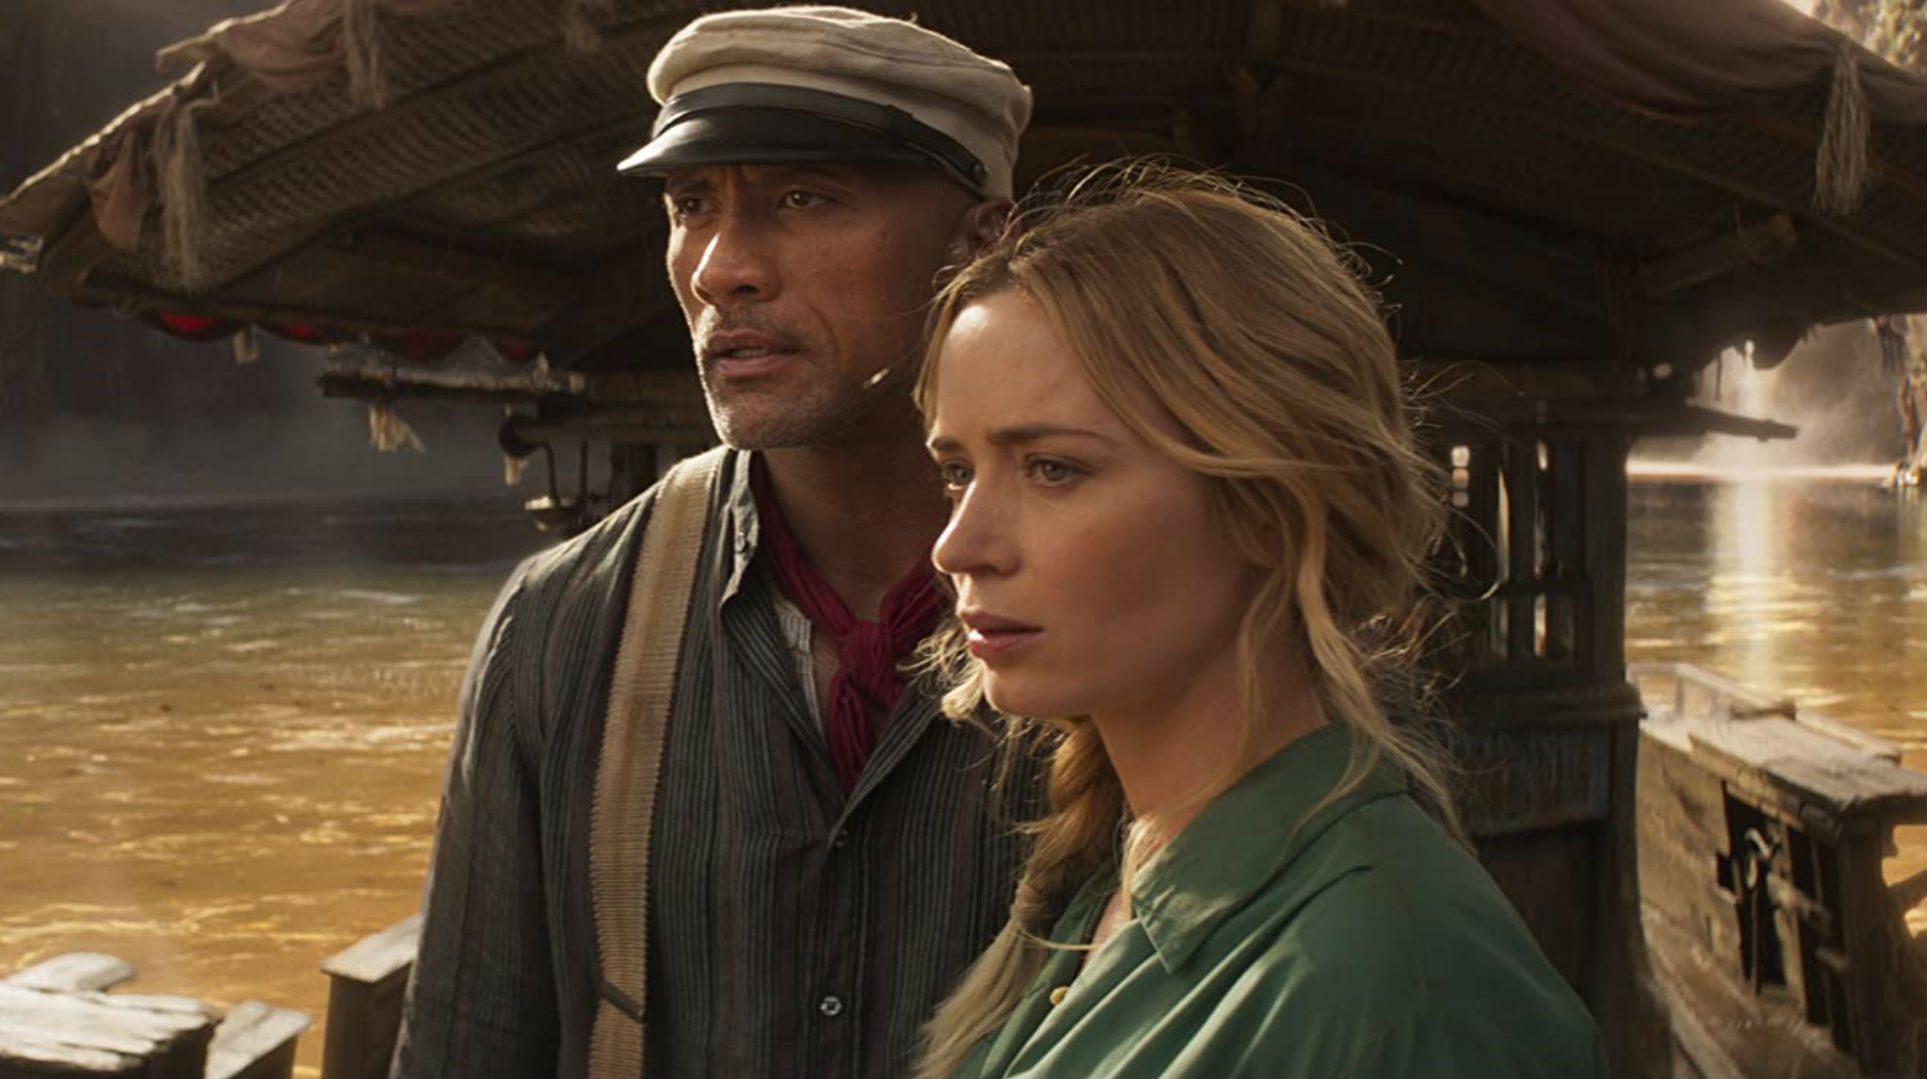 Jungle Cruise Trailer: The Rock and Emily Blunt Turn on the Charm